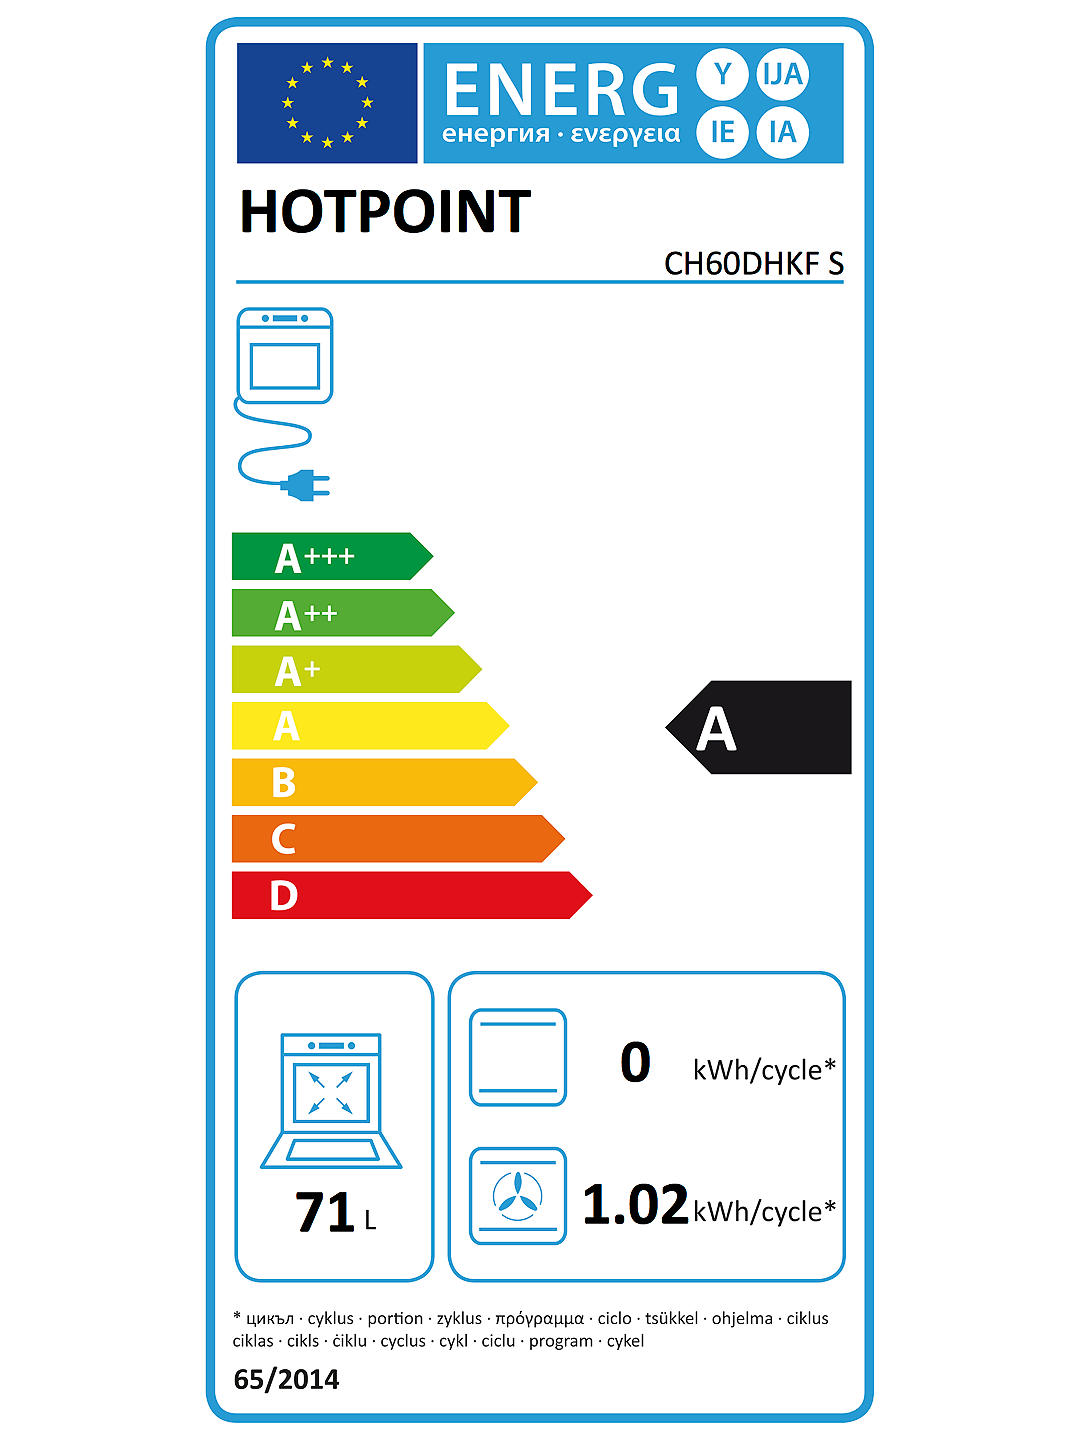 Buy Hotpoint CH60DHKF 60cm Double Dual Fuel Cooker, A Energy Rating, Black Online at johnlewis.com